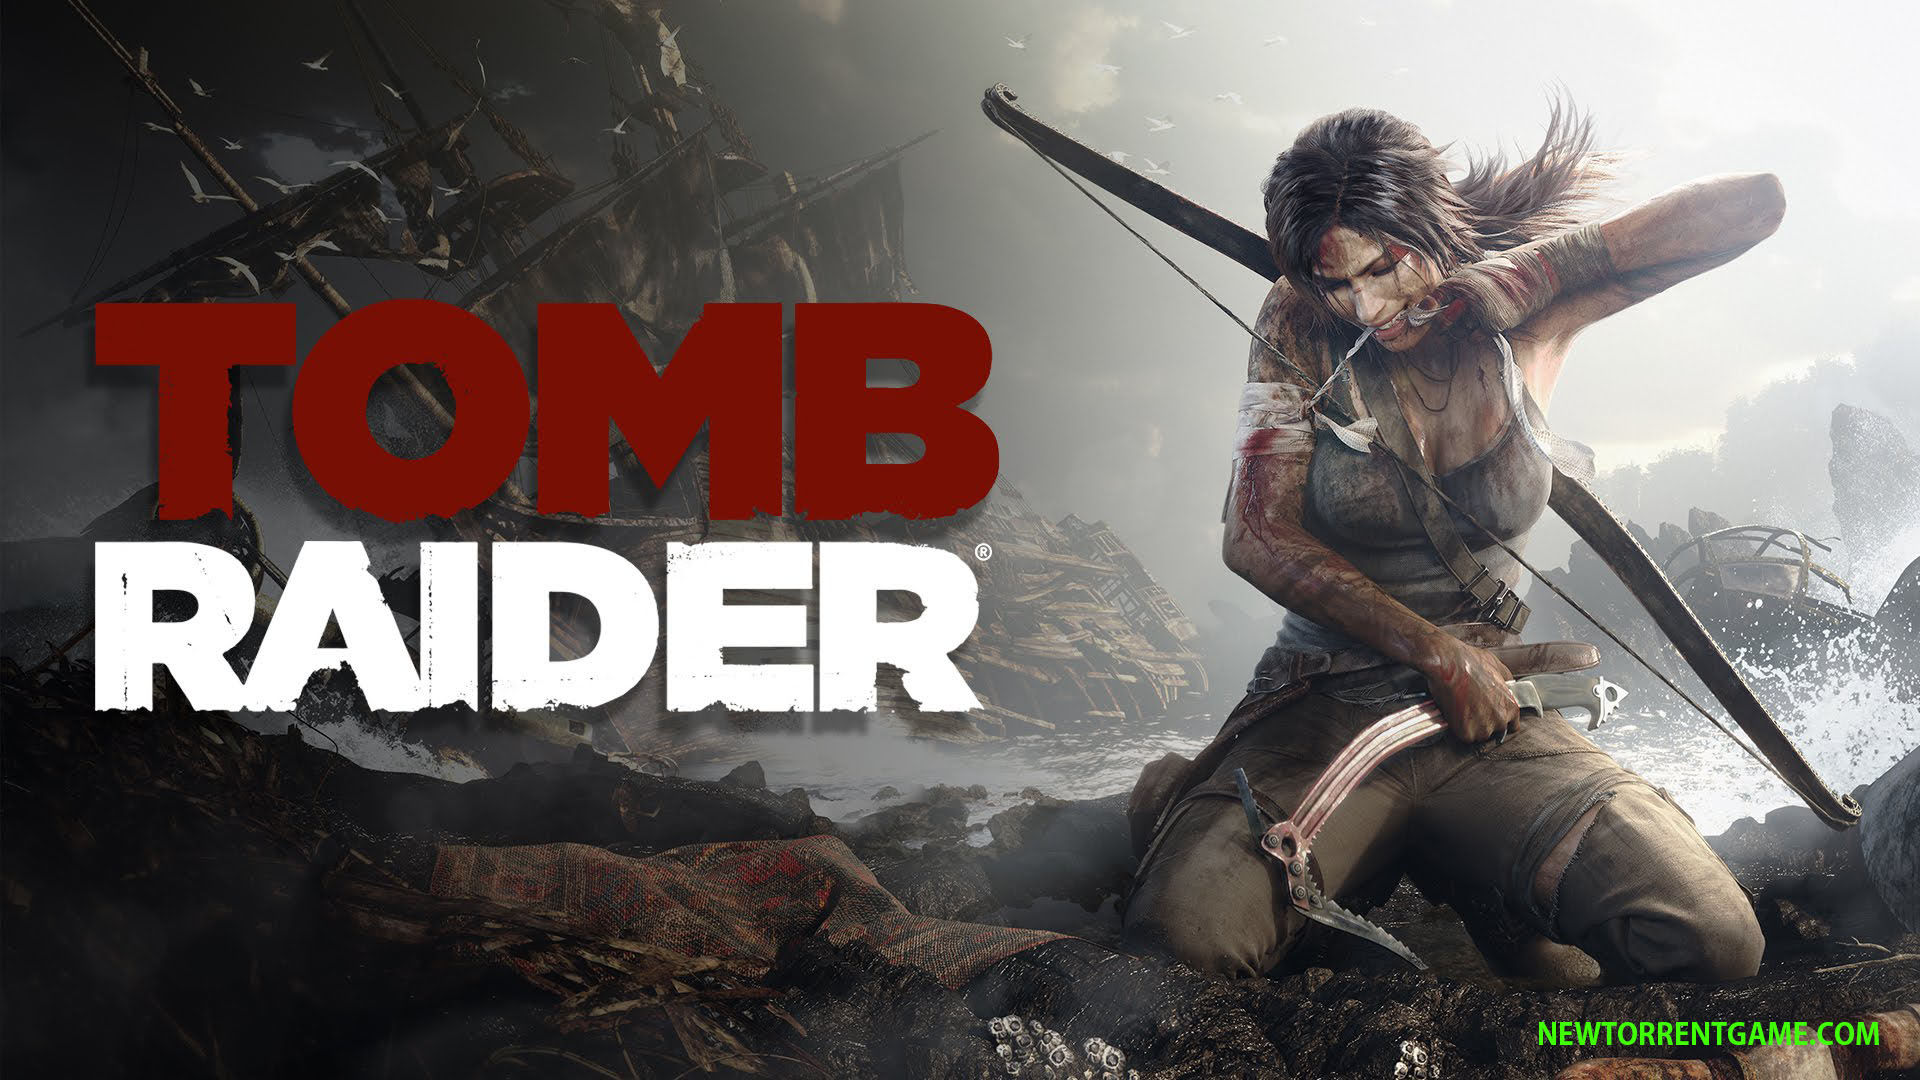 TOMB RAIDER TORRENT - FREE DOWNLOAD - NEWTORRENTGAME